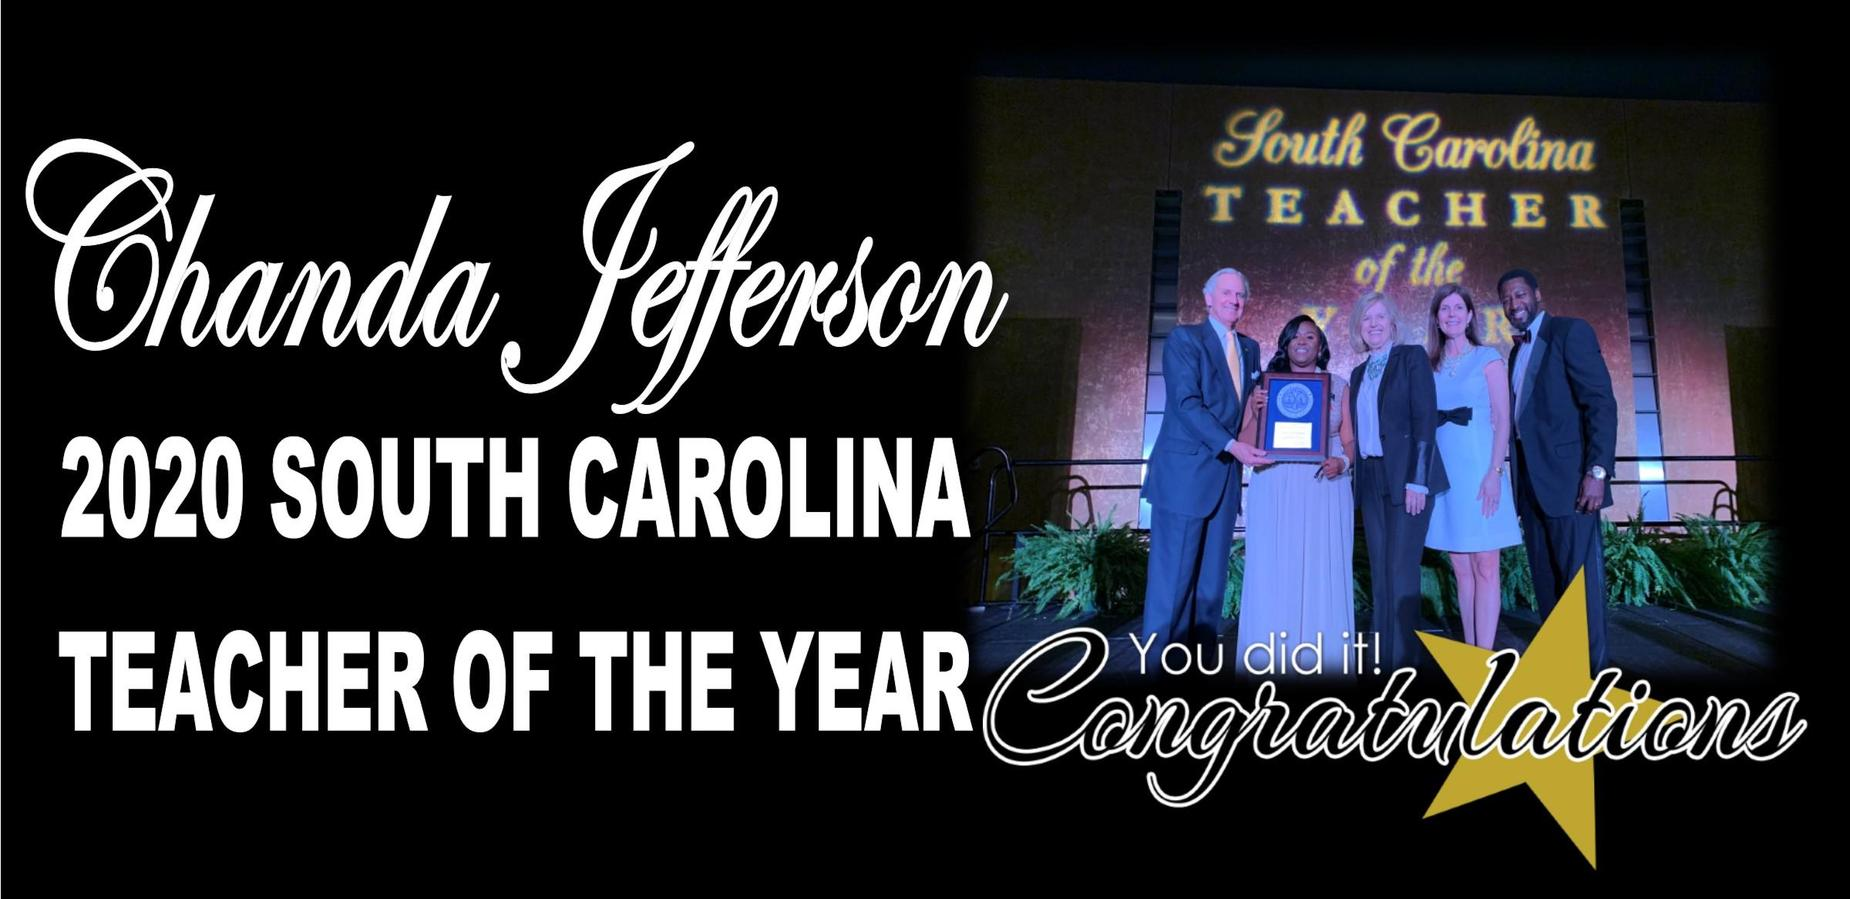 2020 SC TOY Chanda Jefferson